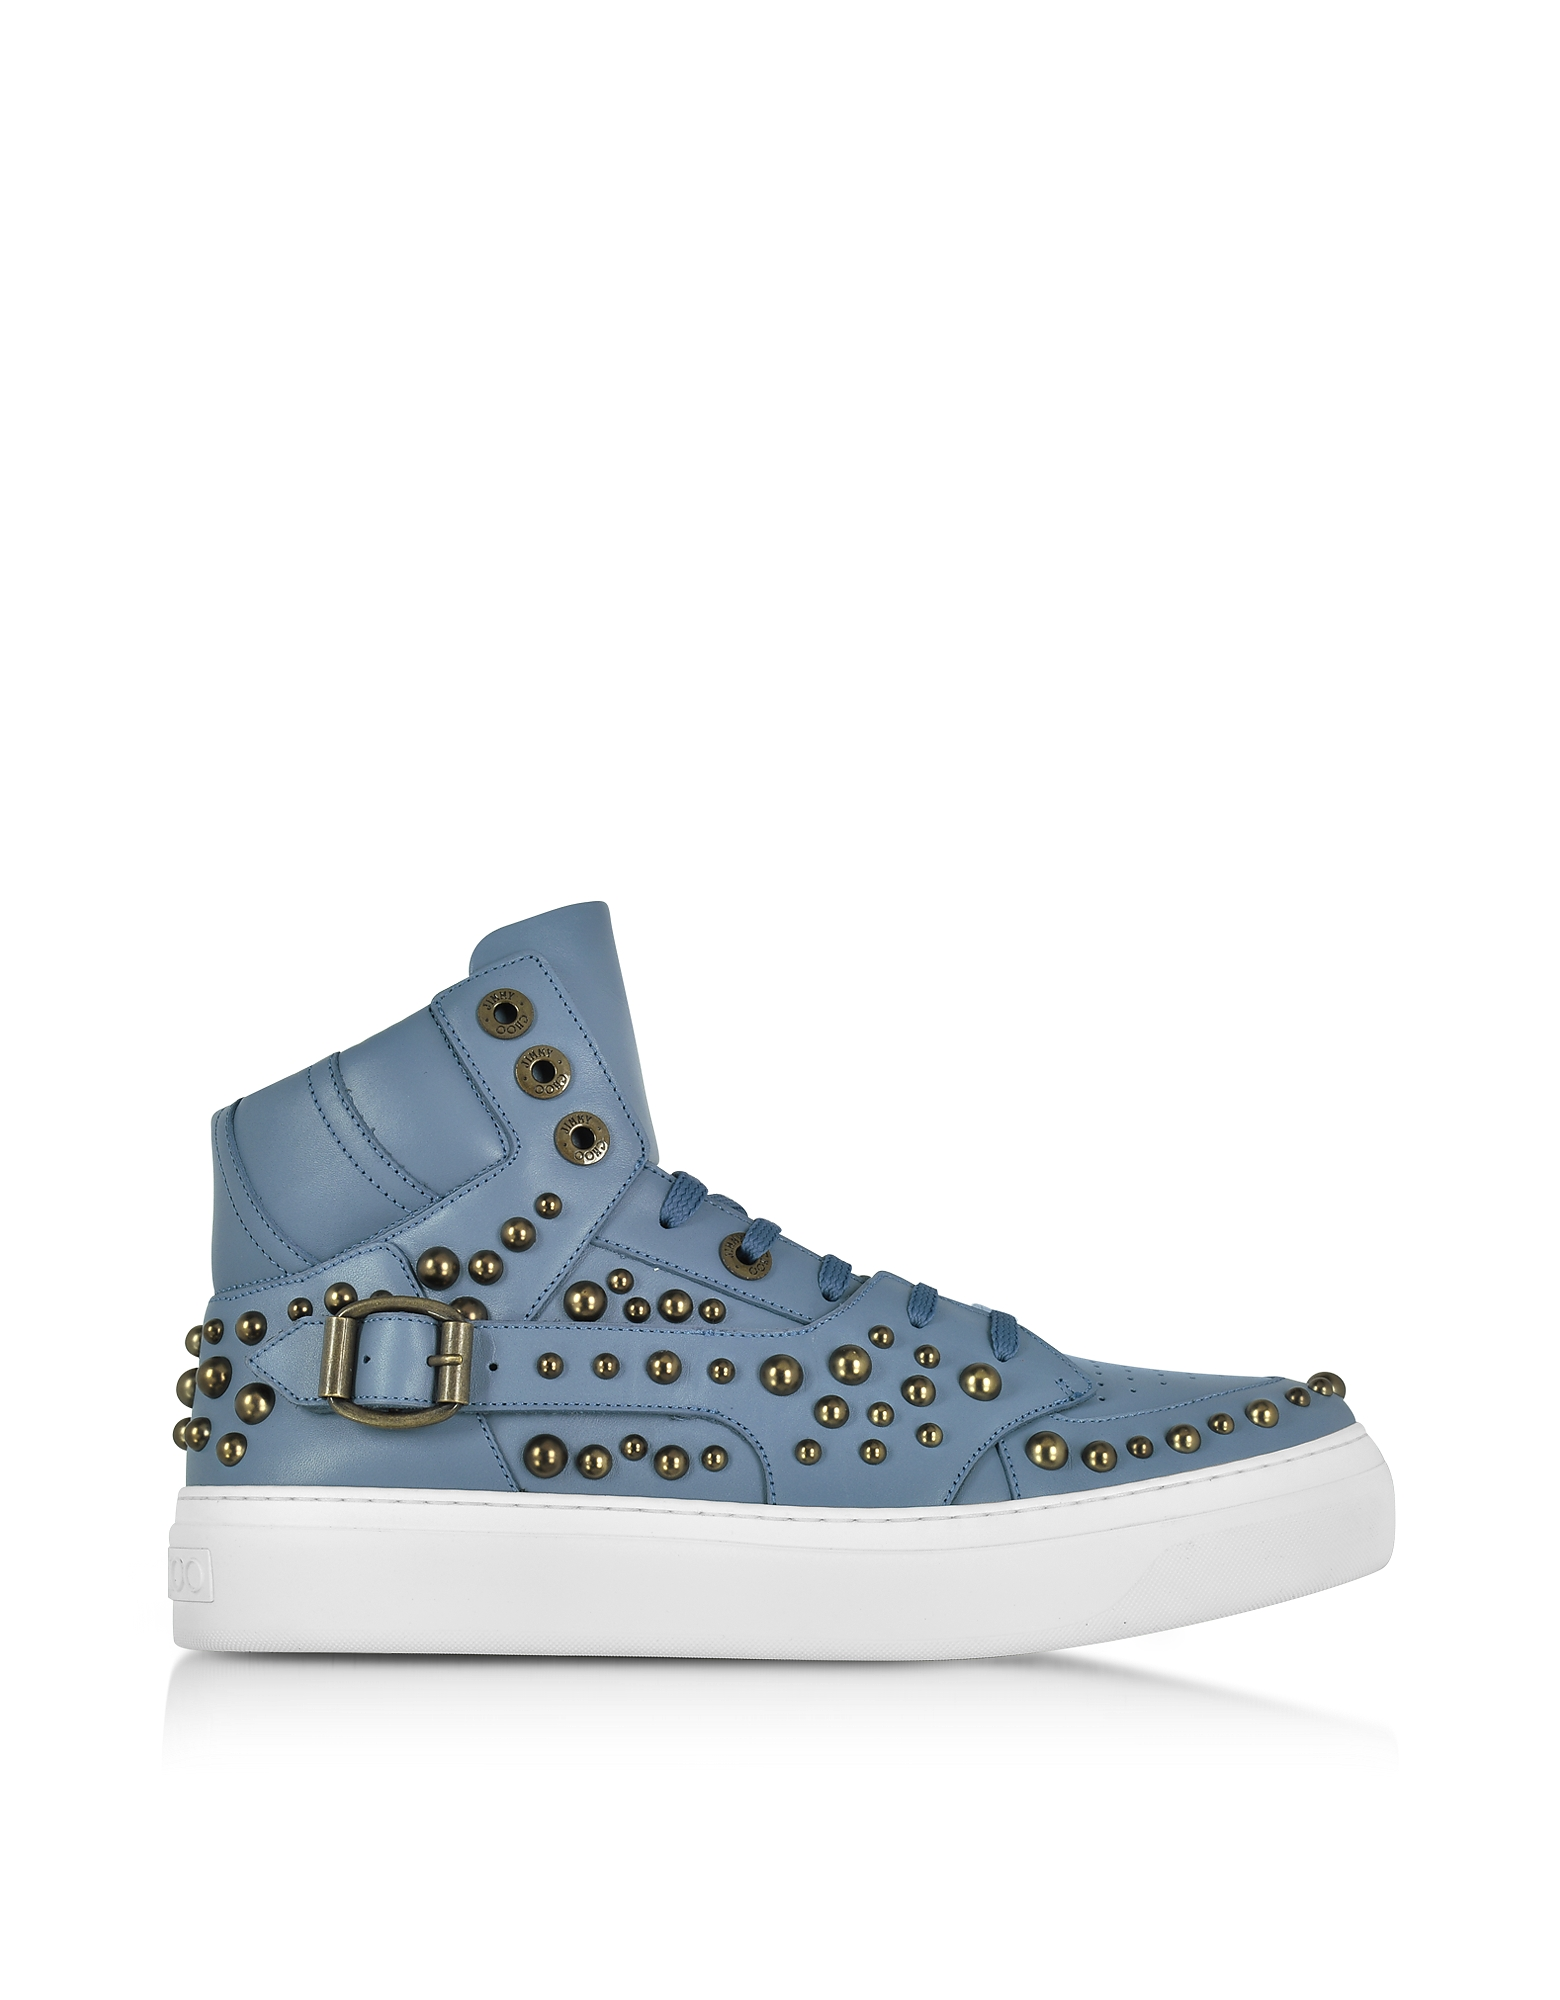 Jimmy Choo Shoes, Ruben Jean Leather High Top Sneaker w/Studs